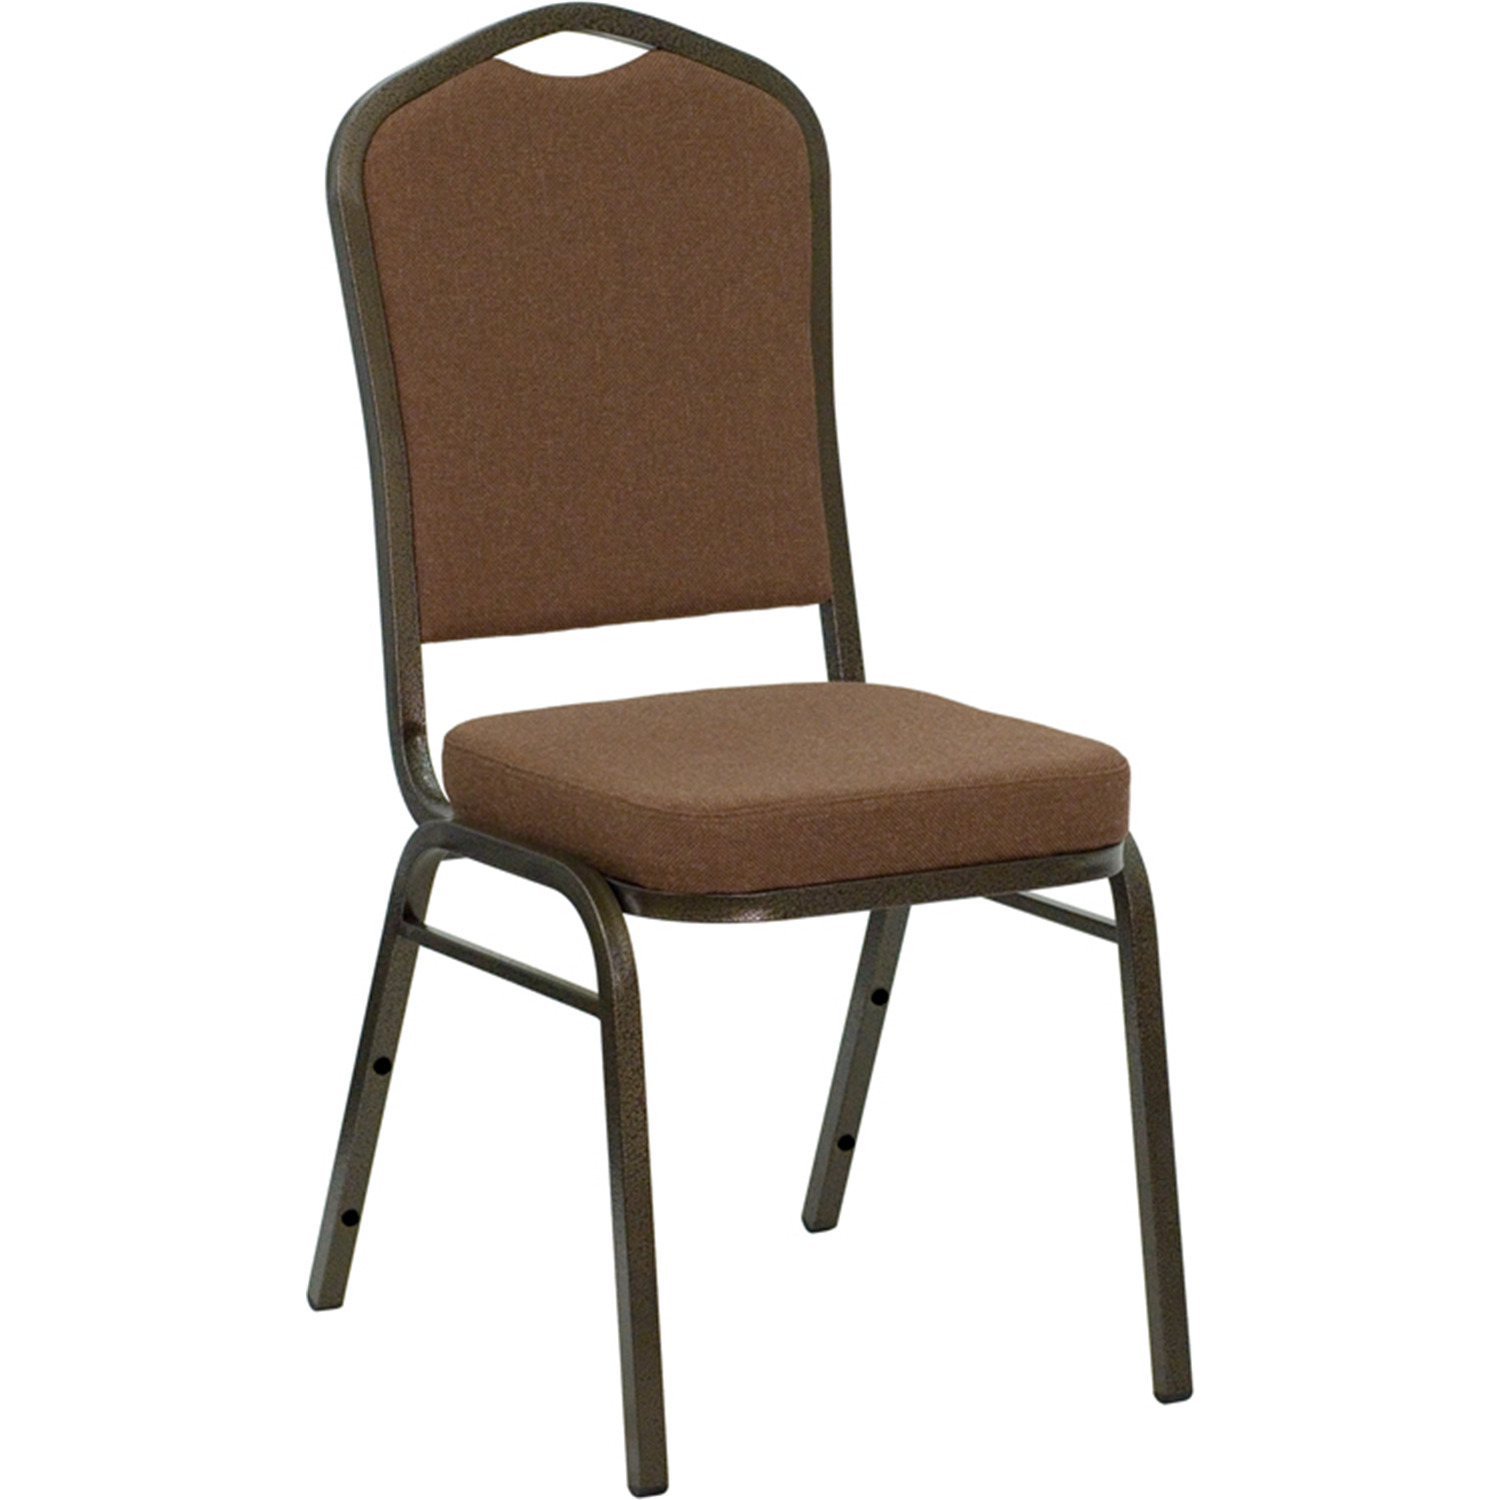 Hercules Stacking Chairs Flash Furniture Hercules Series Crown Back Stacking